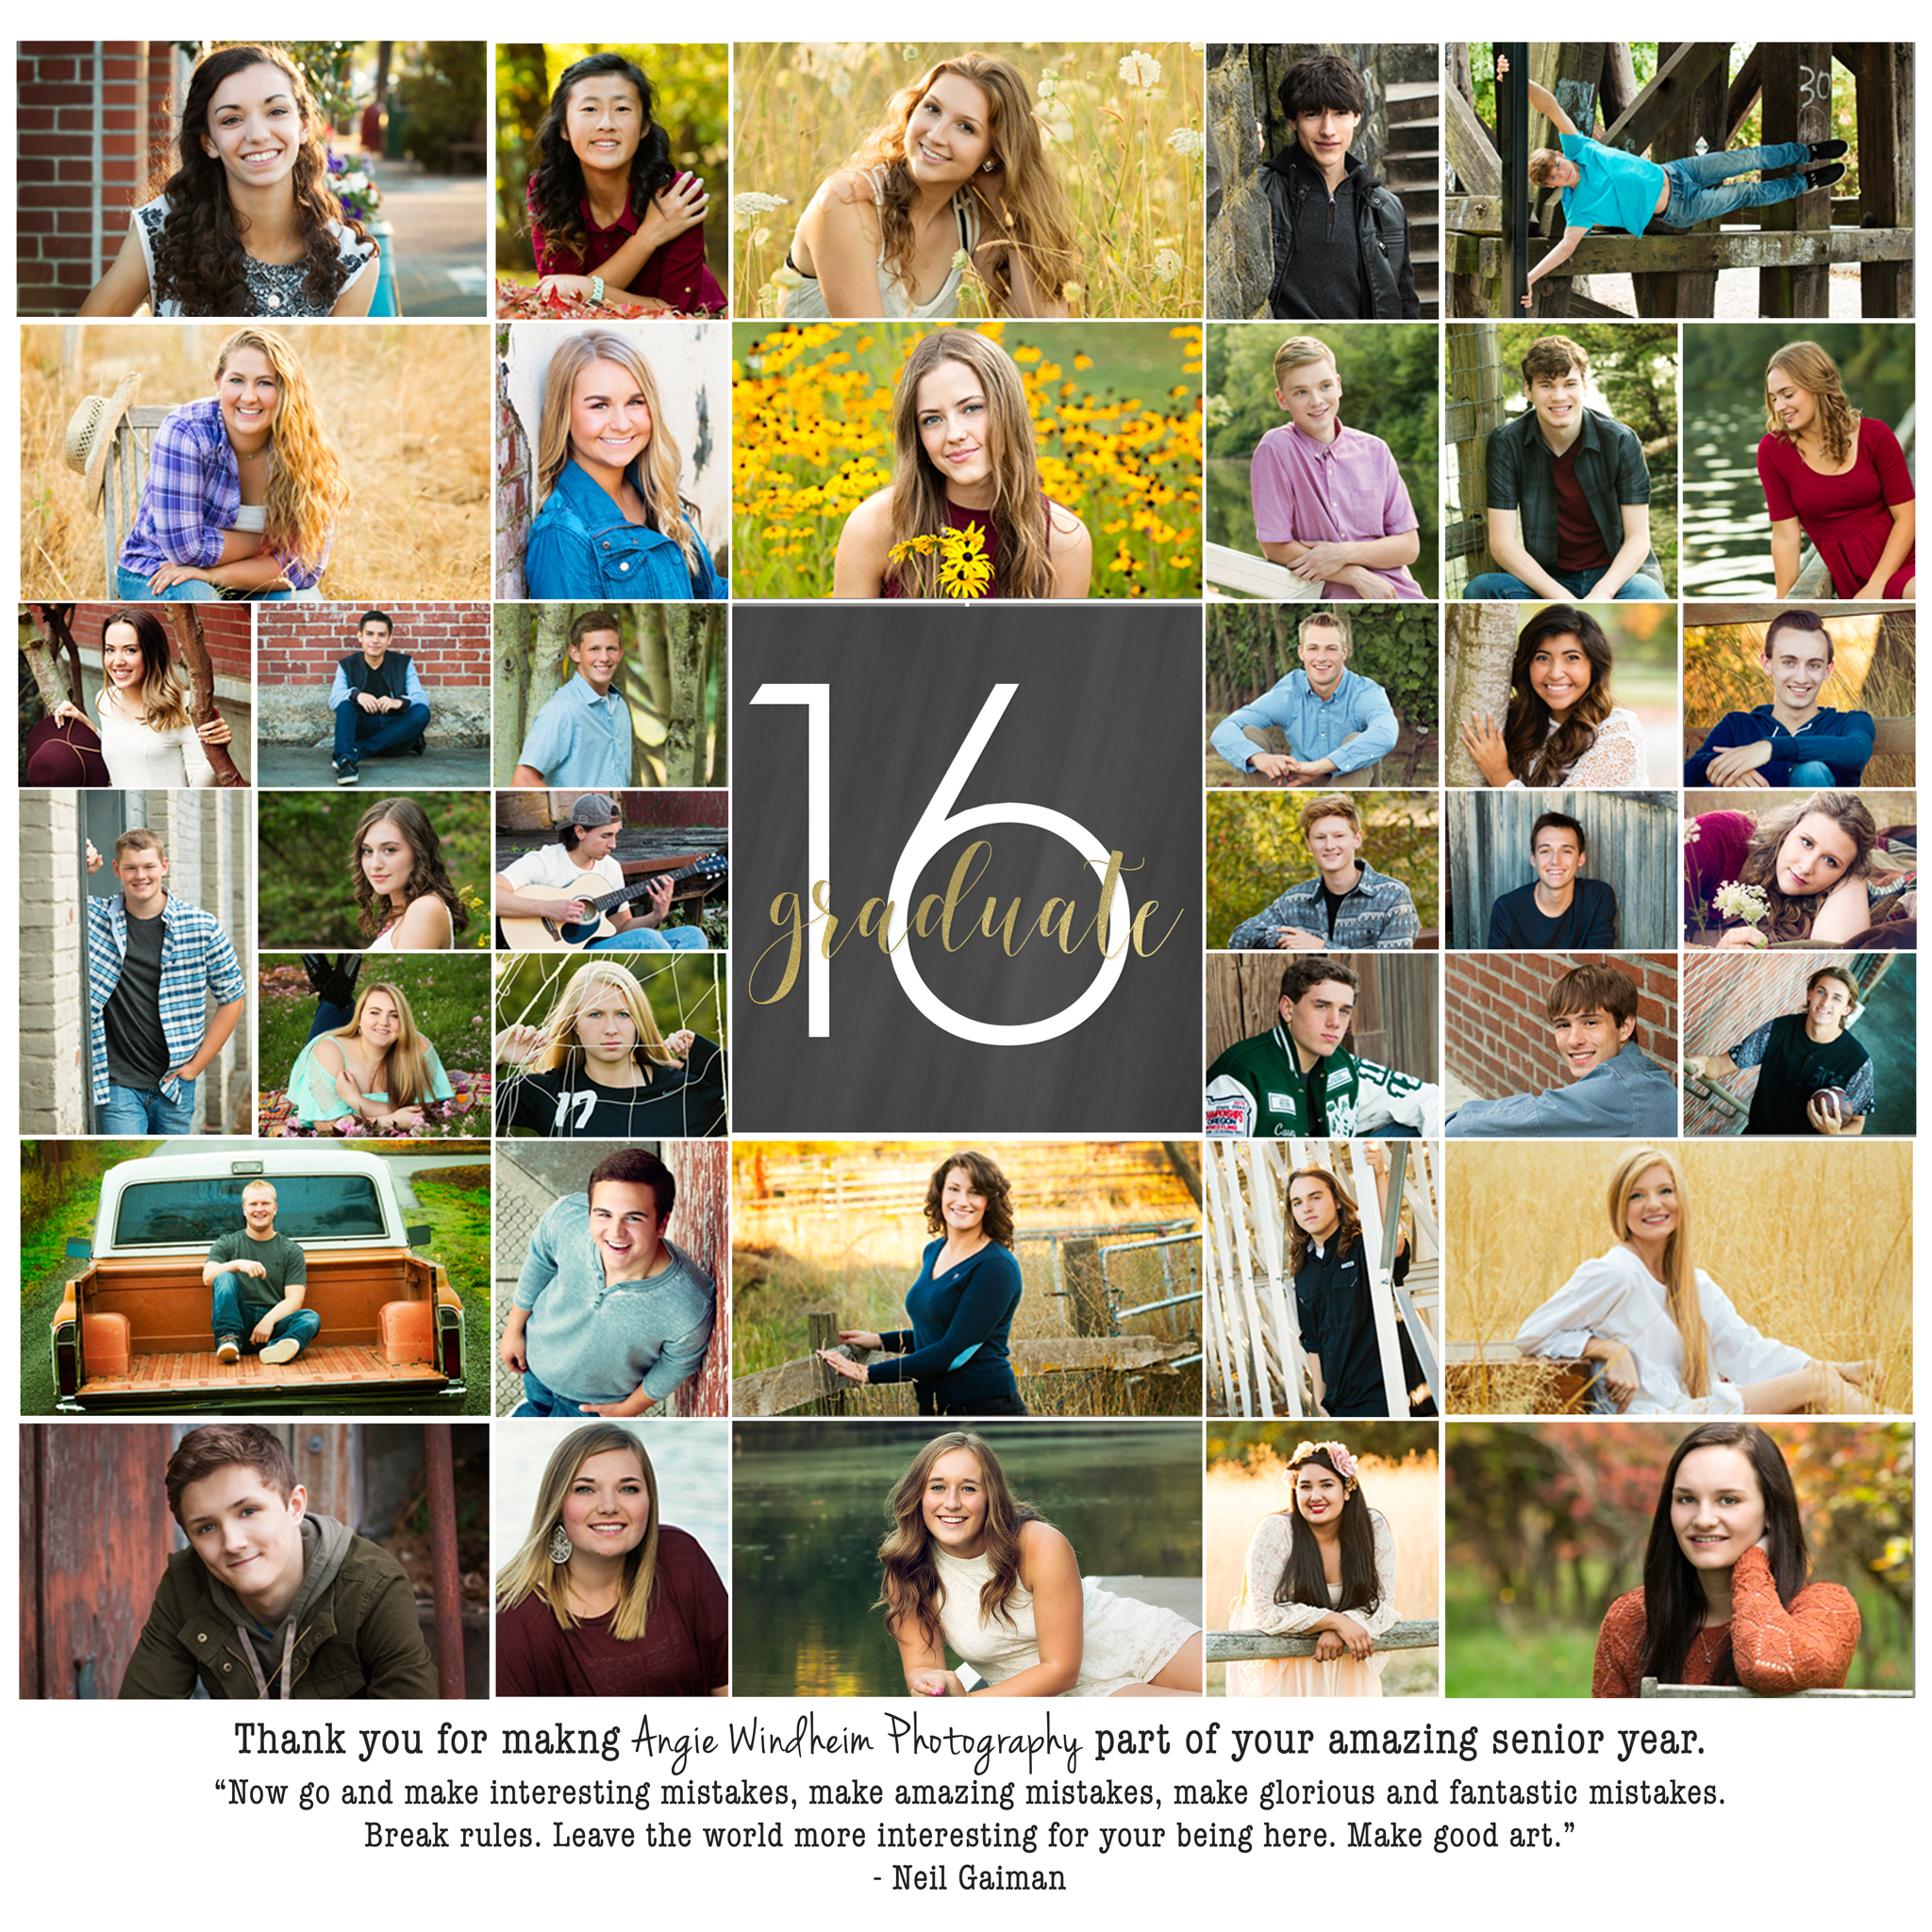 Class of 2016 portraits by Angie Windheim Photography